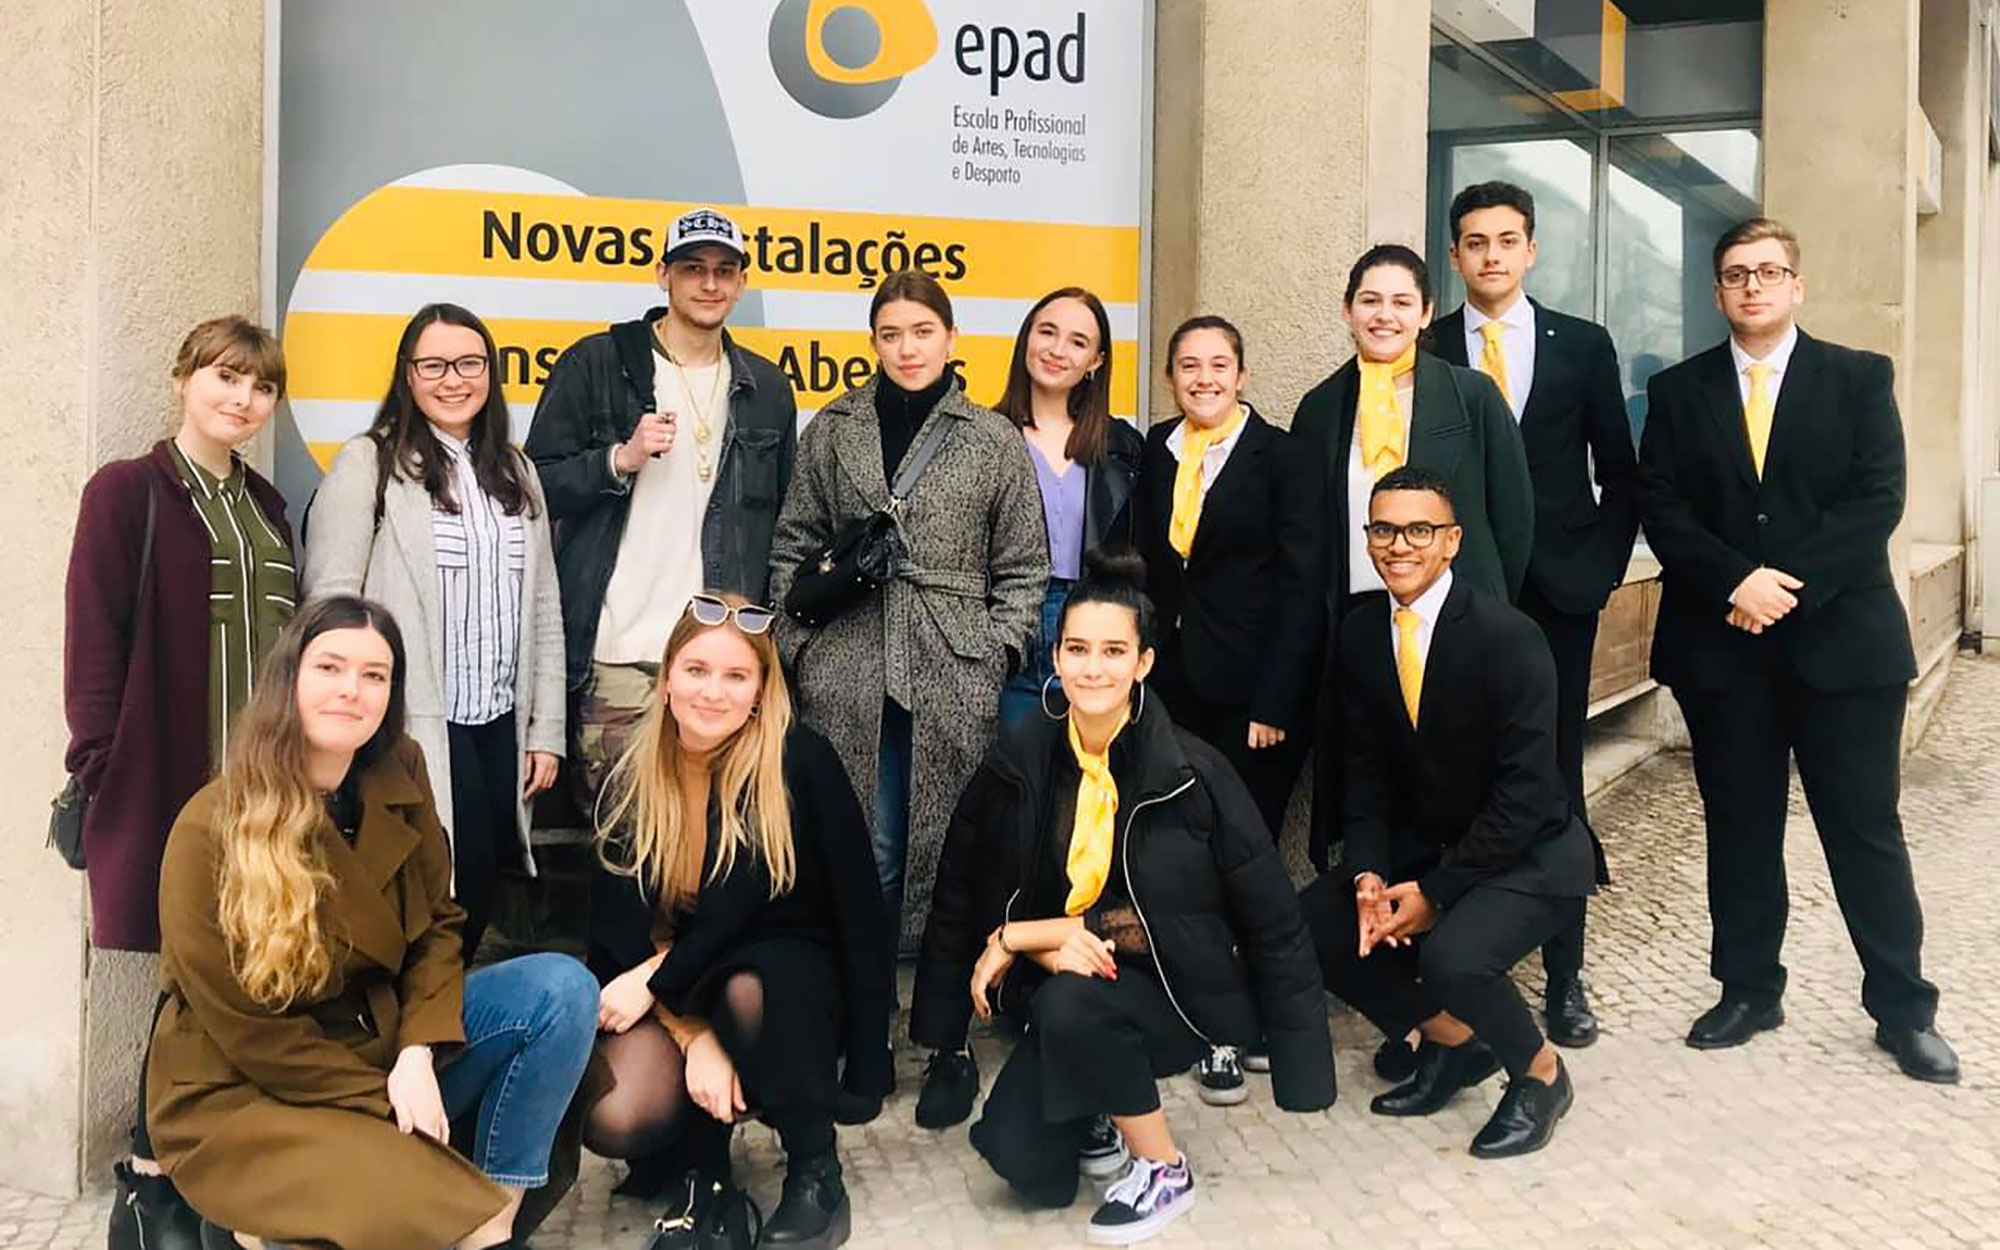 Students on an EPAD guided tour in Lisbon